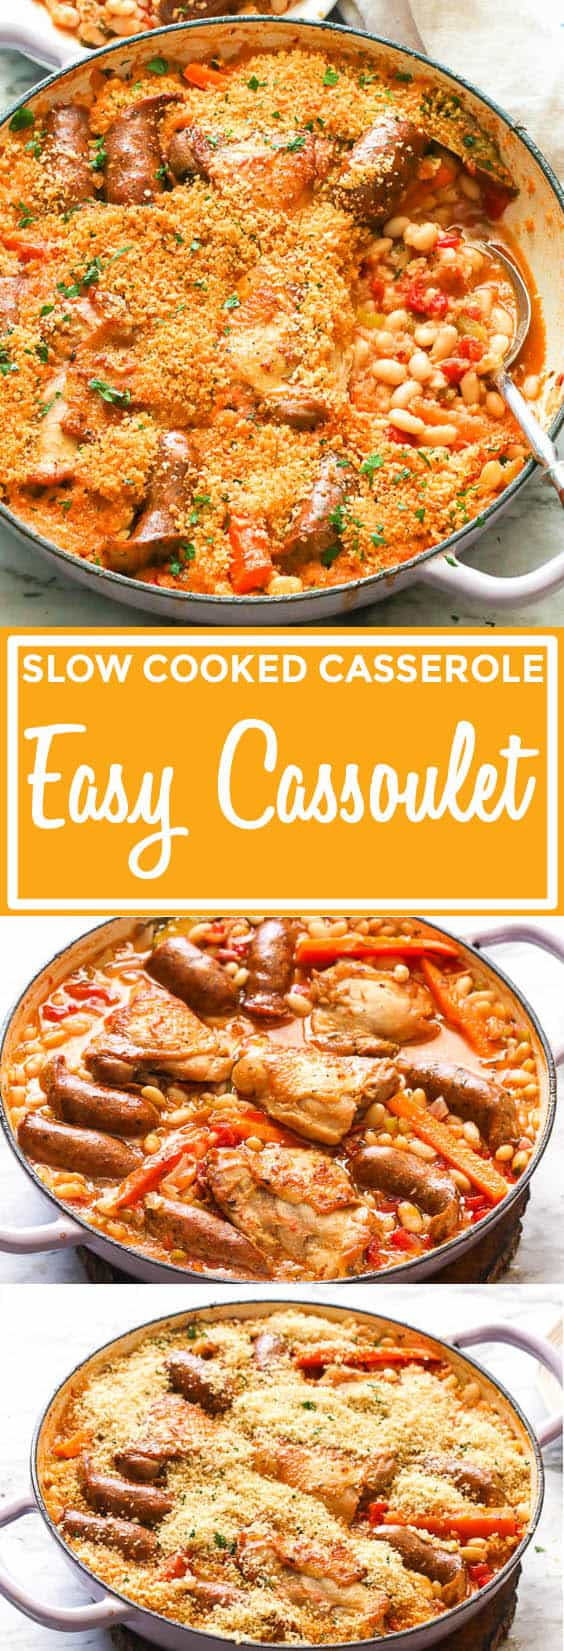 Easy Cassoulet